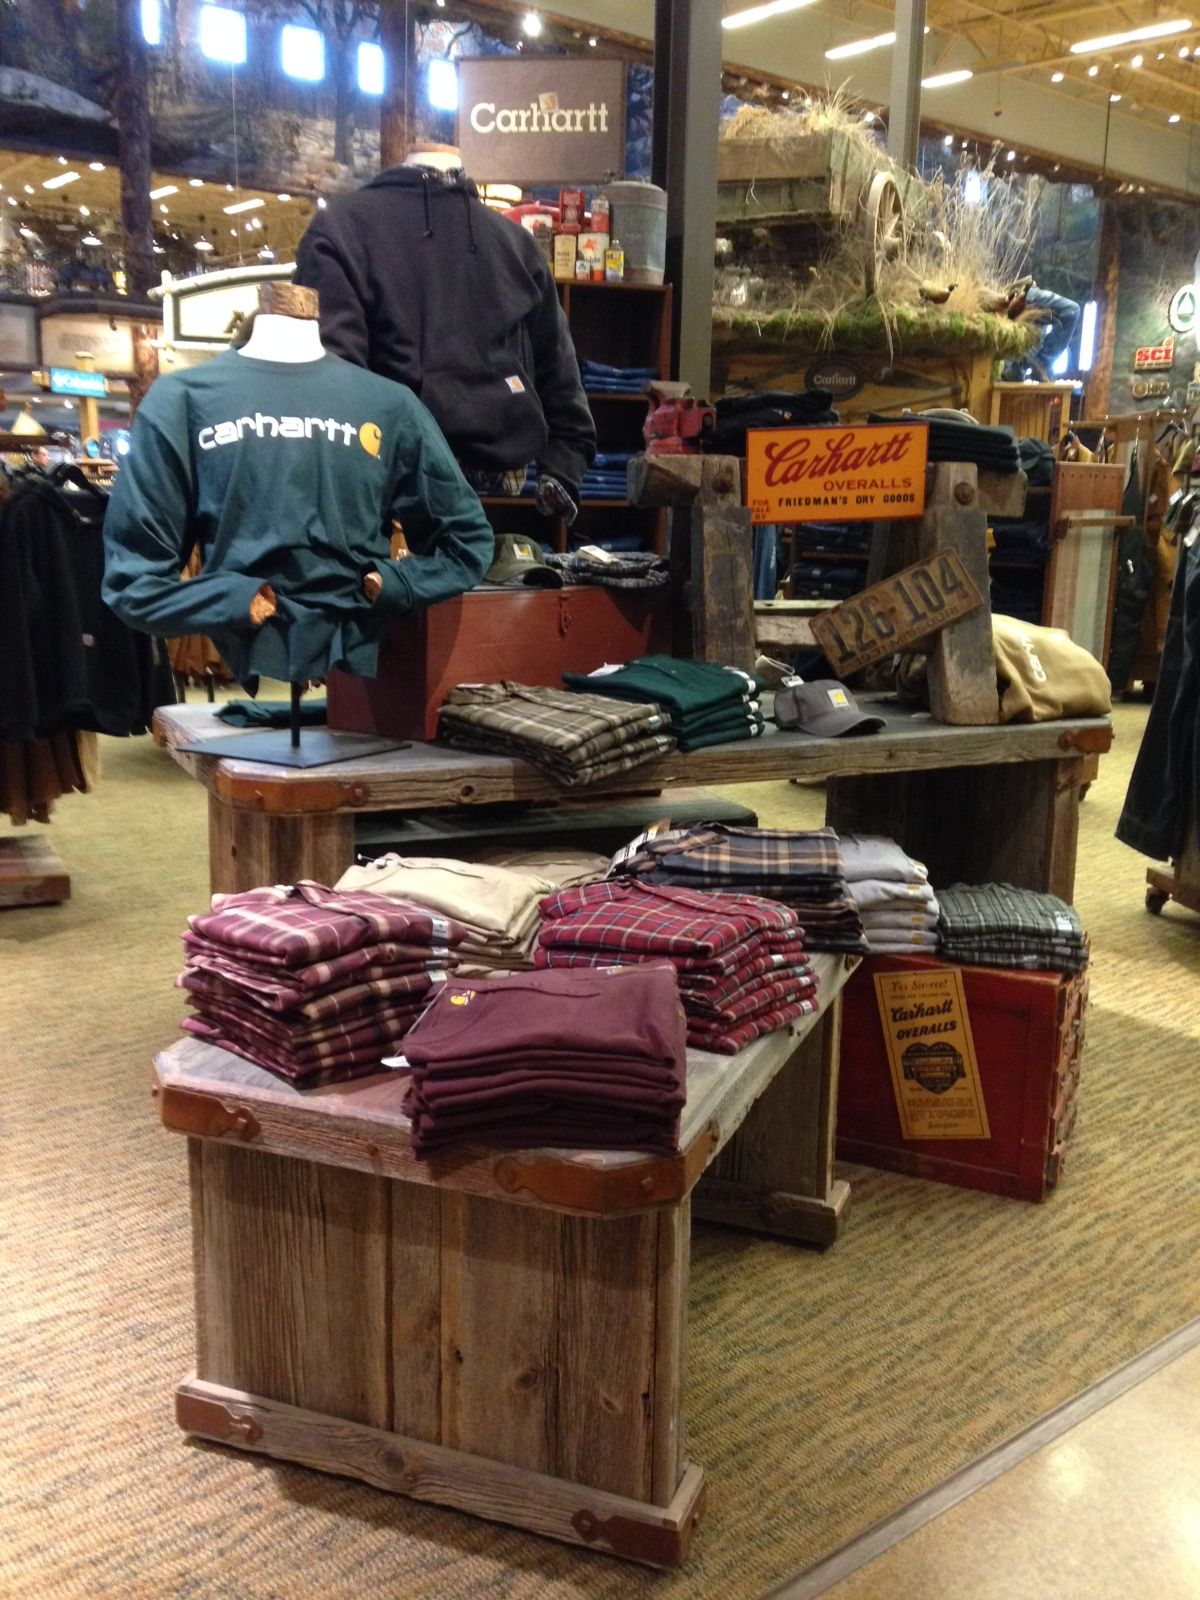 Muebles Escaparate Nice Carhartt Display At Bass Pro In Ohio V Store